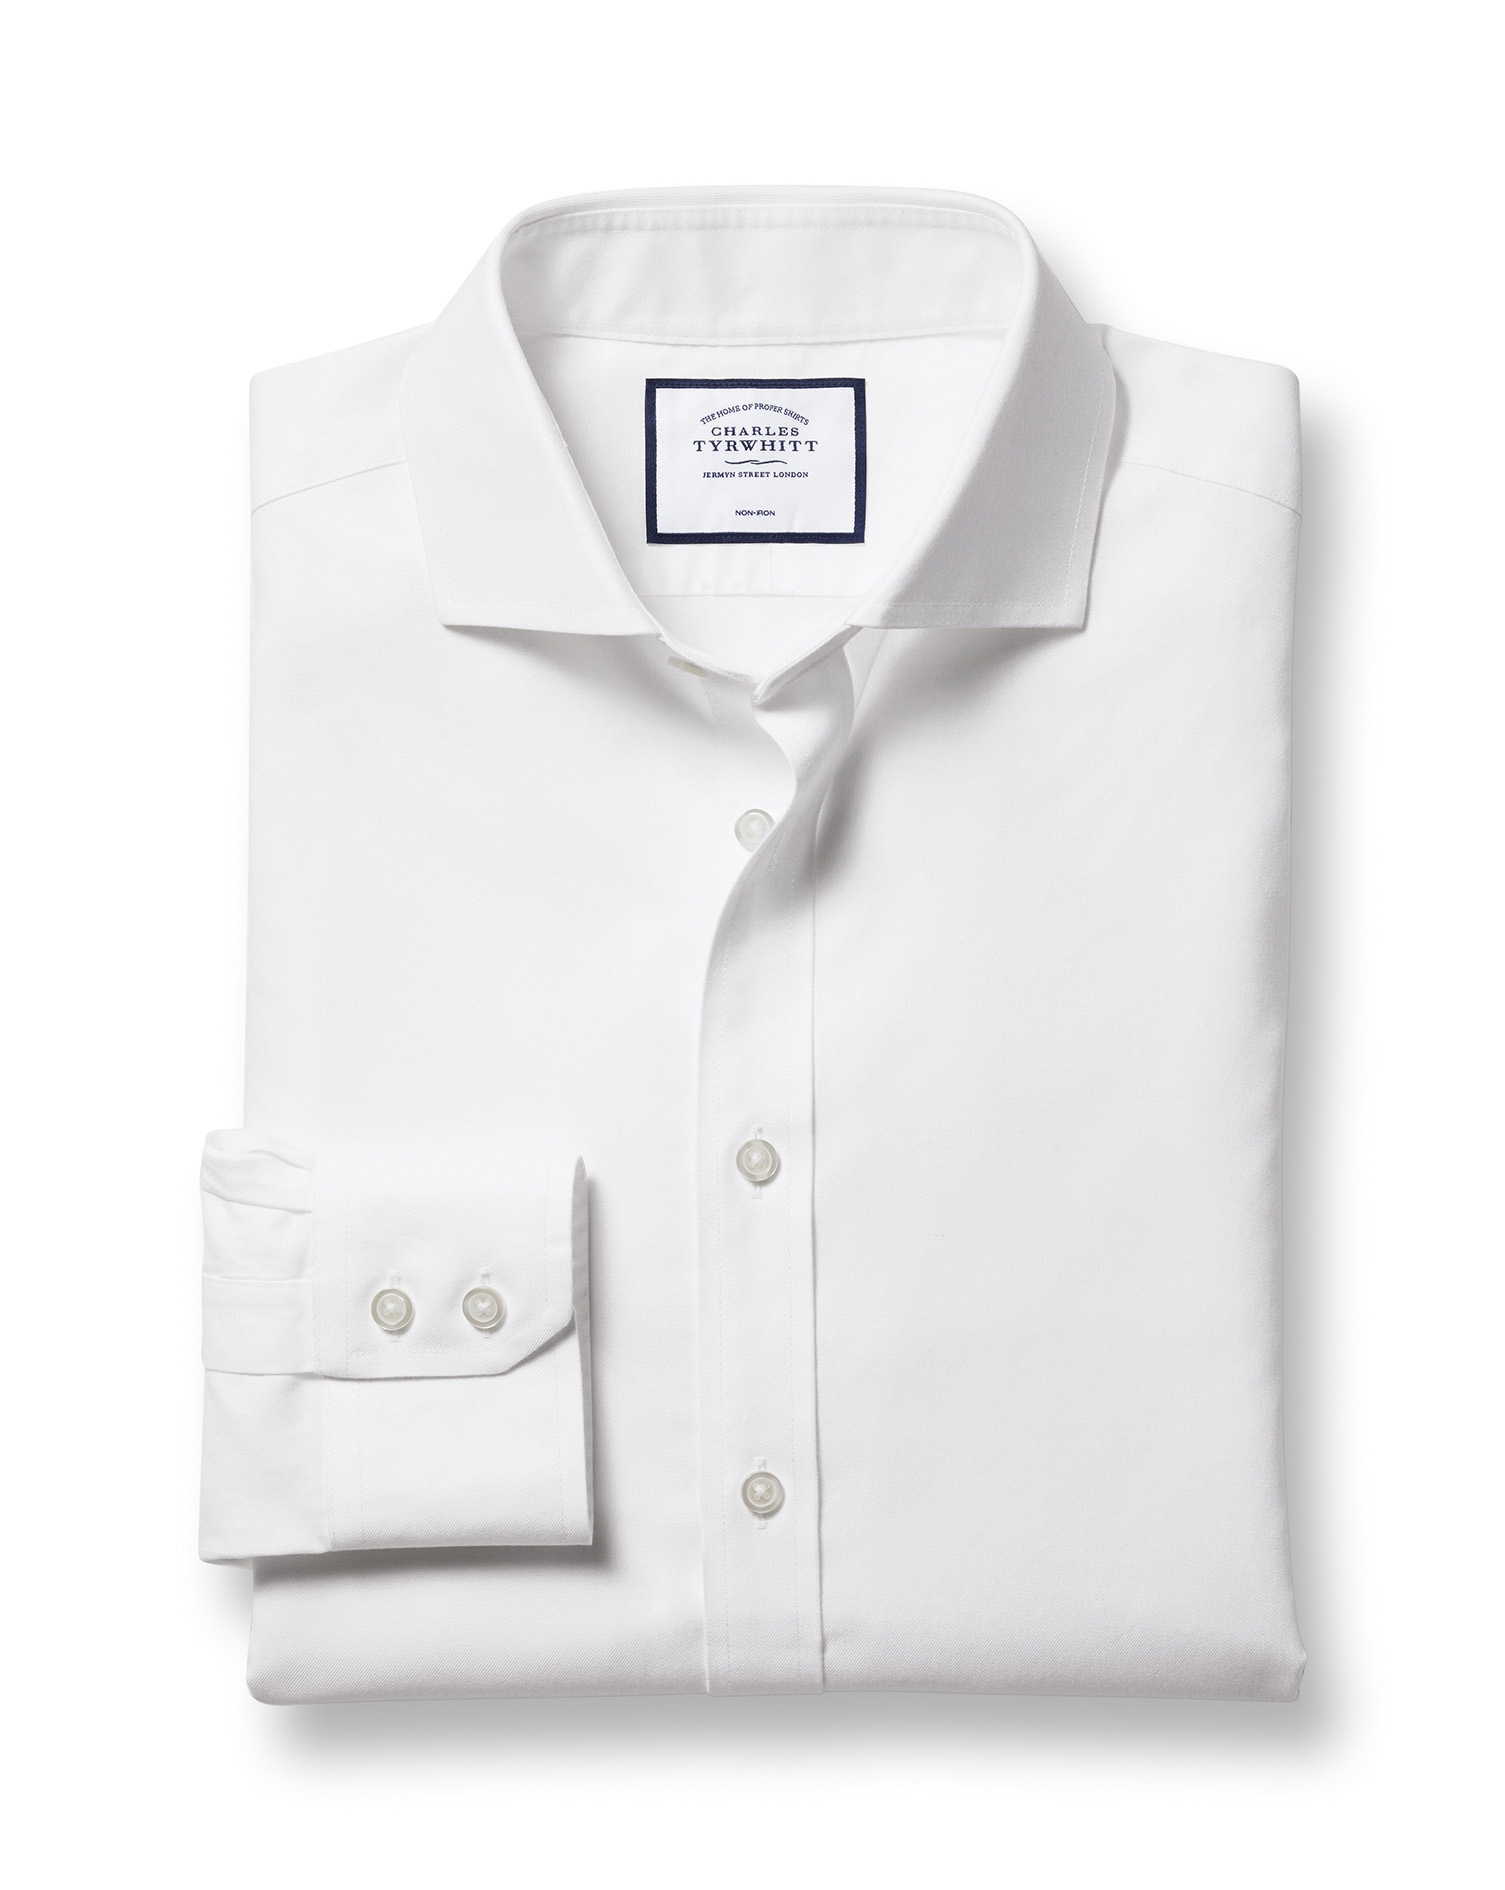 Extra Slim Fit White Non-Iron Twill Cutaway Collar Cotton Formal Shirt Double Cuff Size 17/36 by Cha